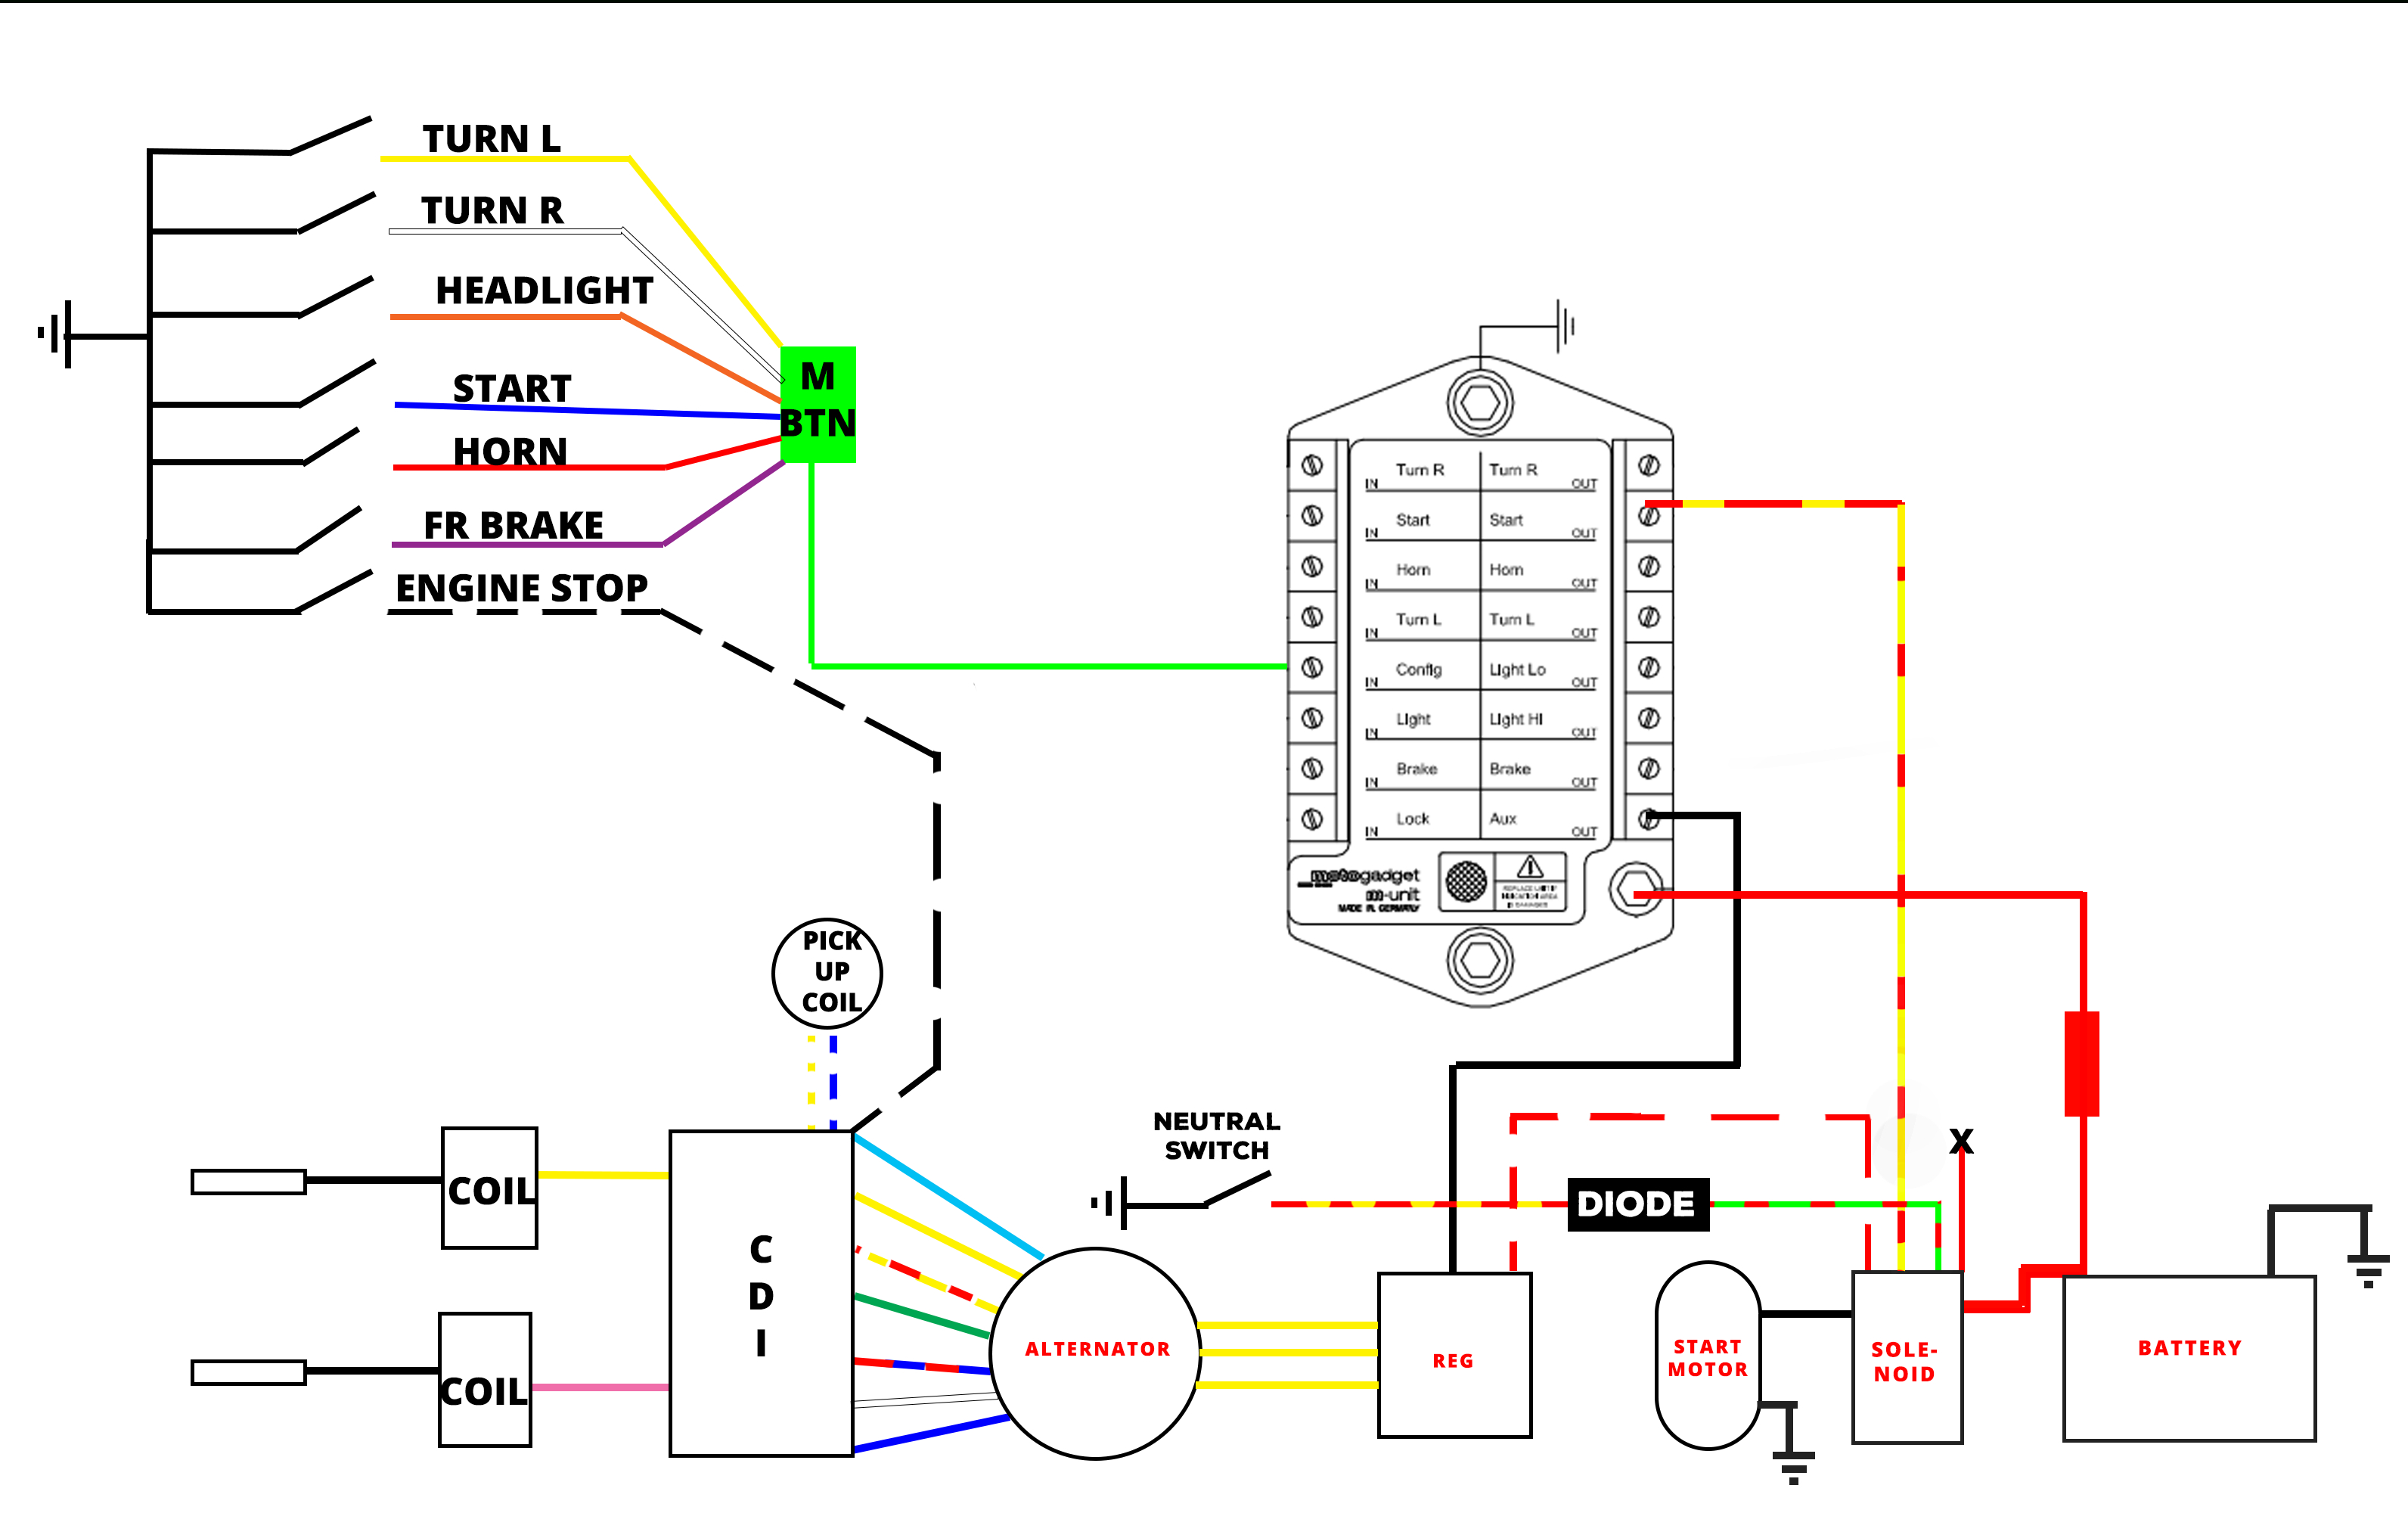 Atv Cdi Box Wiring - Wiring Diagram Data - Cdi Wiring Diagram